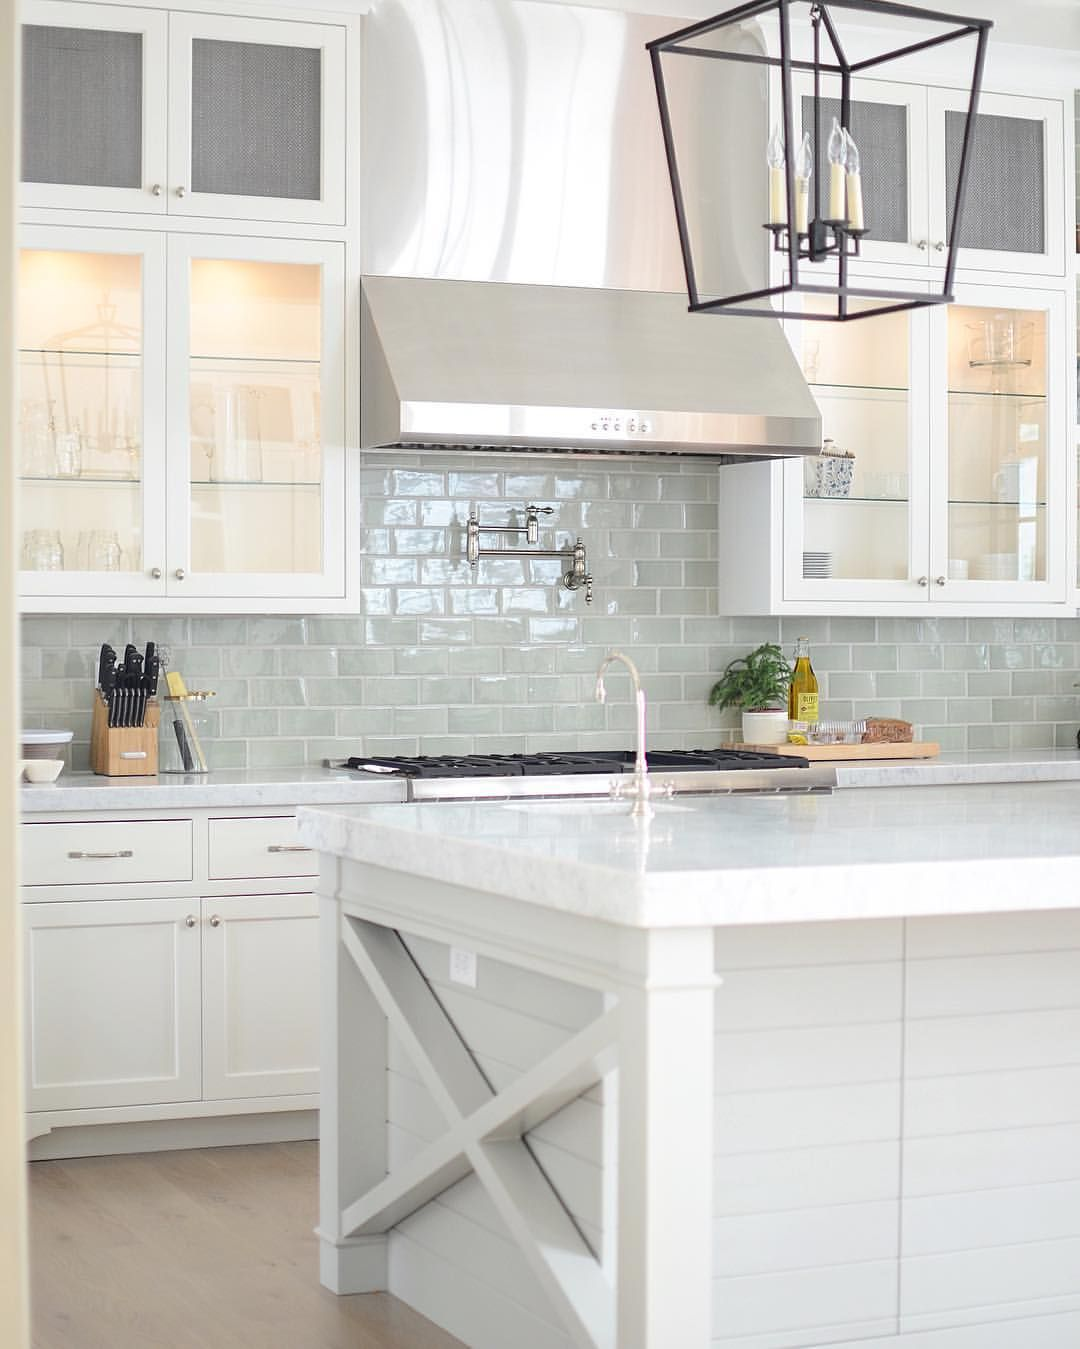 Best Bright White Kitchen With Pale Blue Subway Tile Backsplash 400 x 300